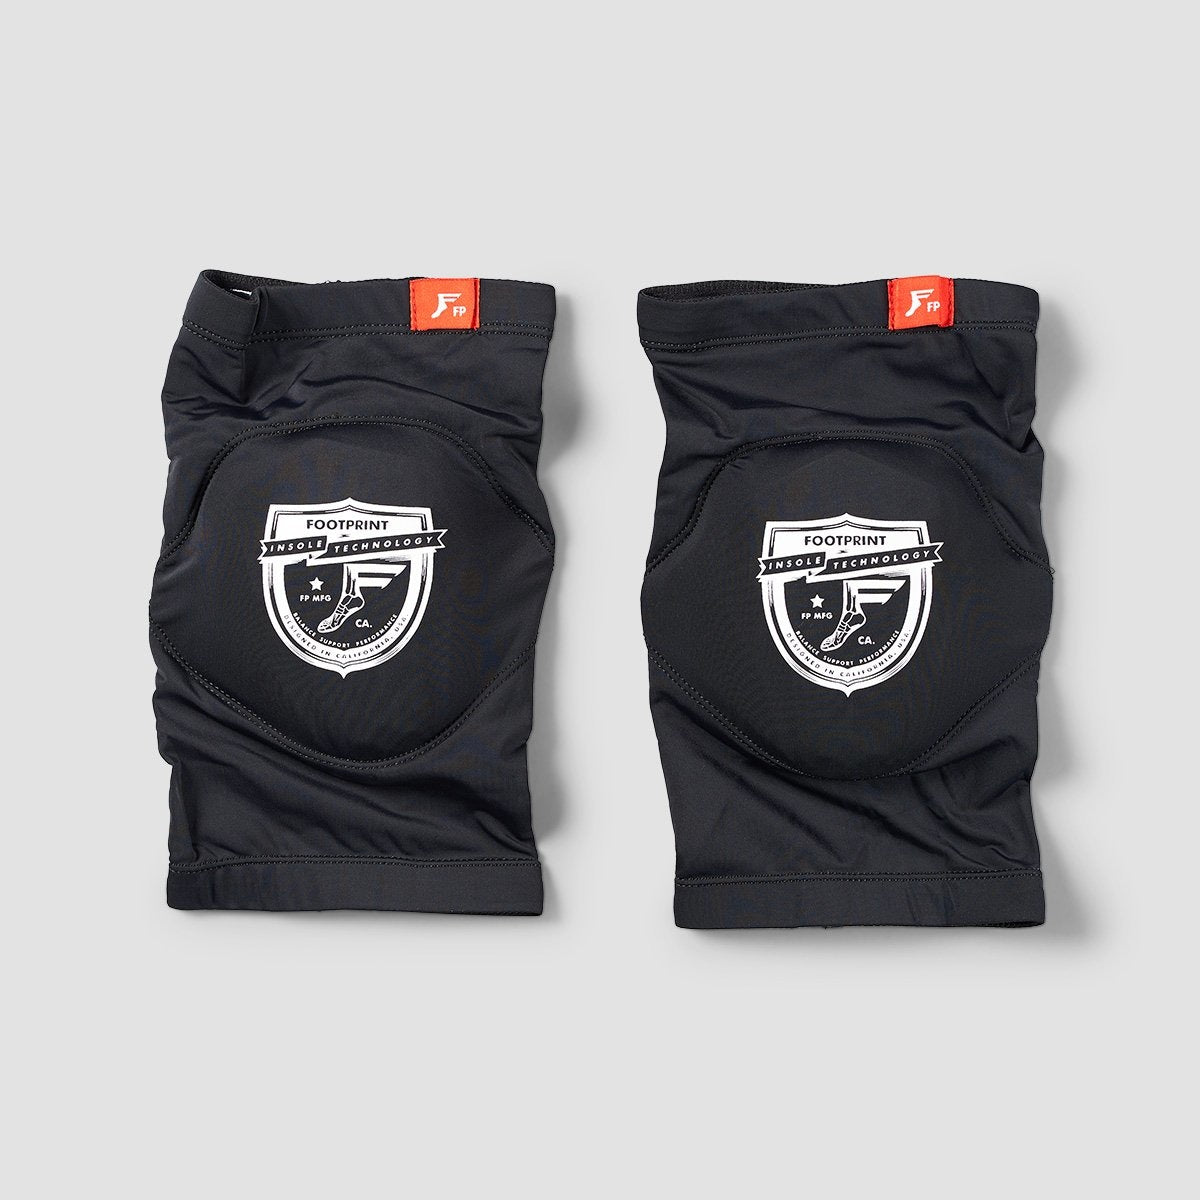 FootPrint Shield Knee Sleeves Black - Safety Gear